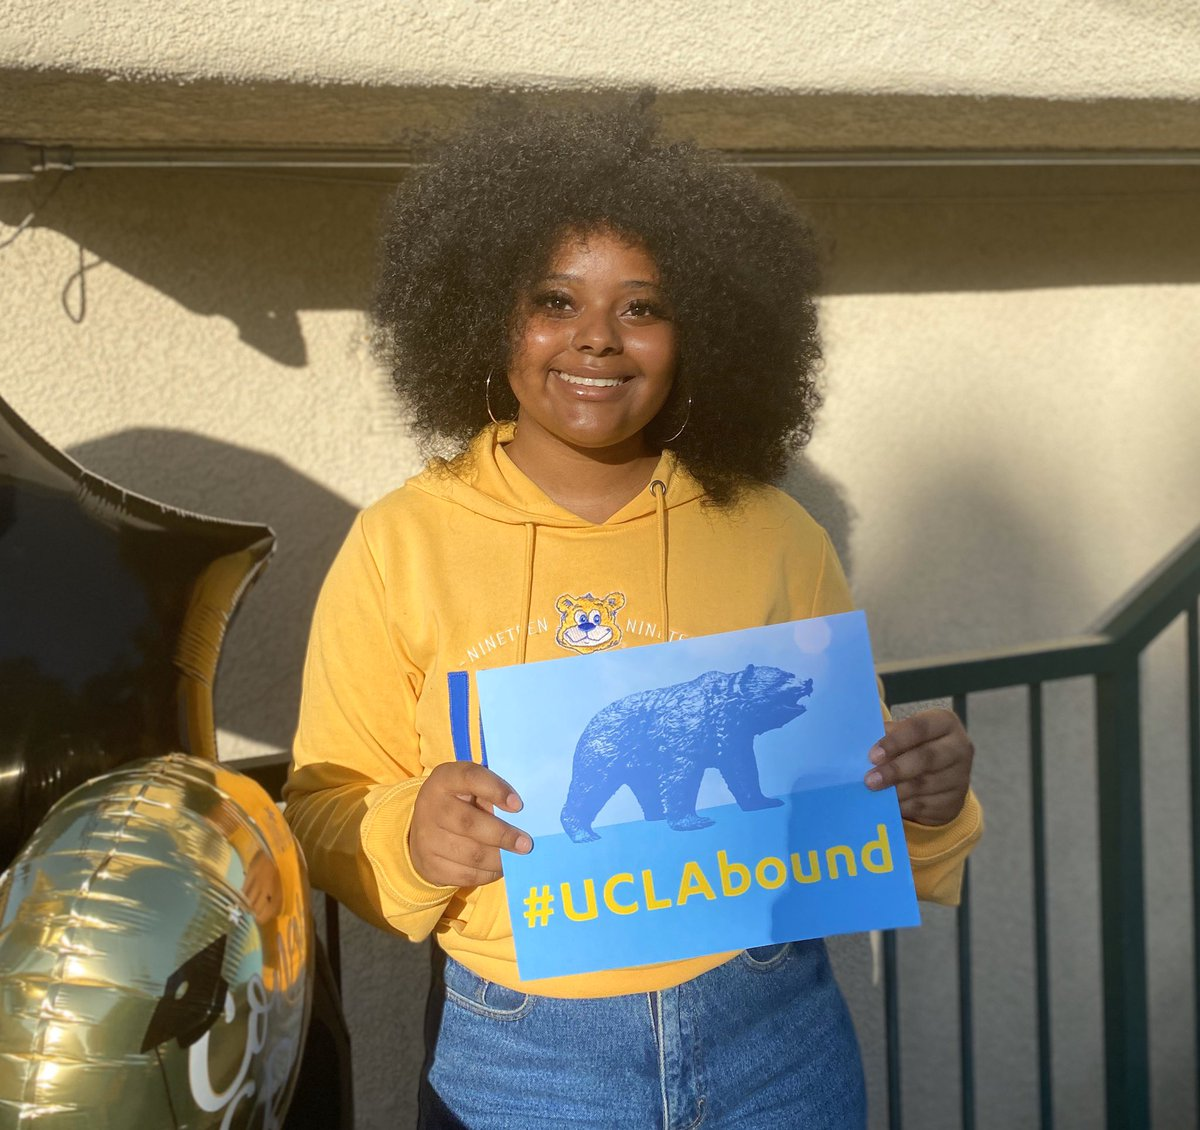 Two years ago I took a leap of faith and moved to California to chase my dreams. Today I am graduating from SWC with 3 associate degrees, a honors gpa, $5,000+ in scholarships and i'm transferring to the #1 public university in America. This is all a surreal feeling #uclabound 🙌🏾 https://t.co/vZiXeHQL3I